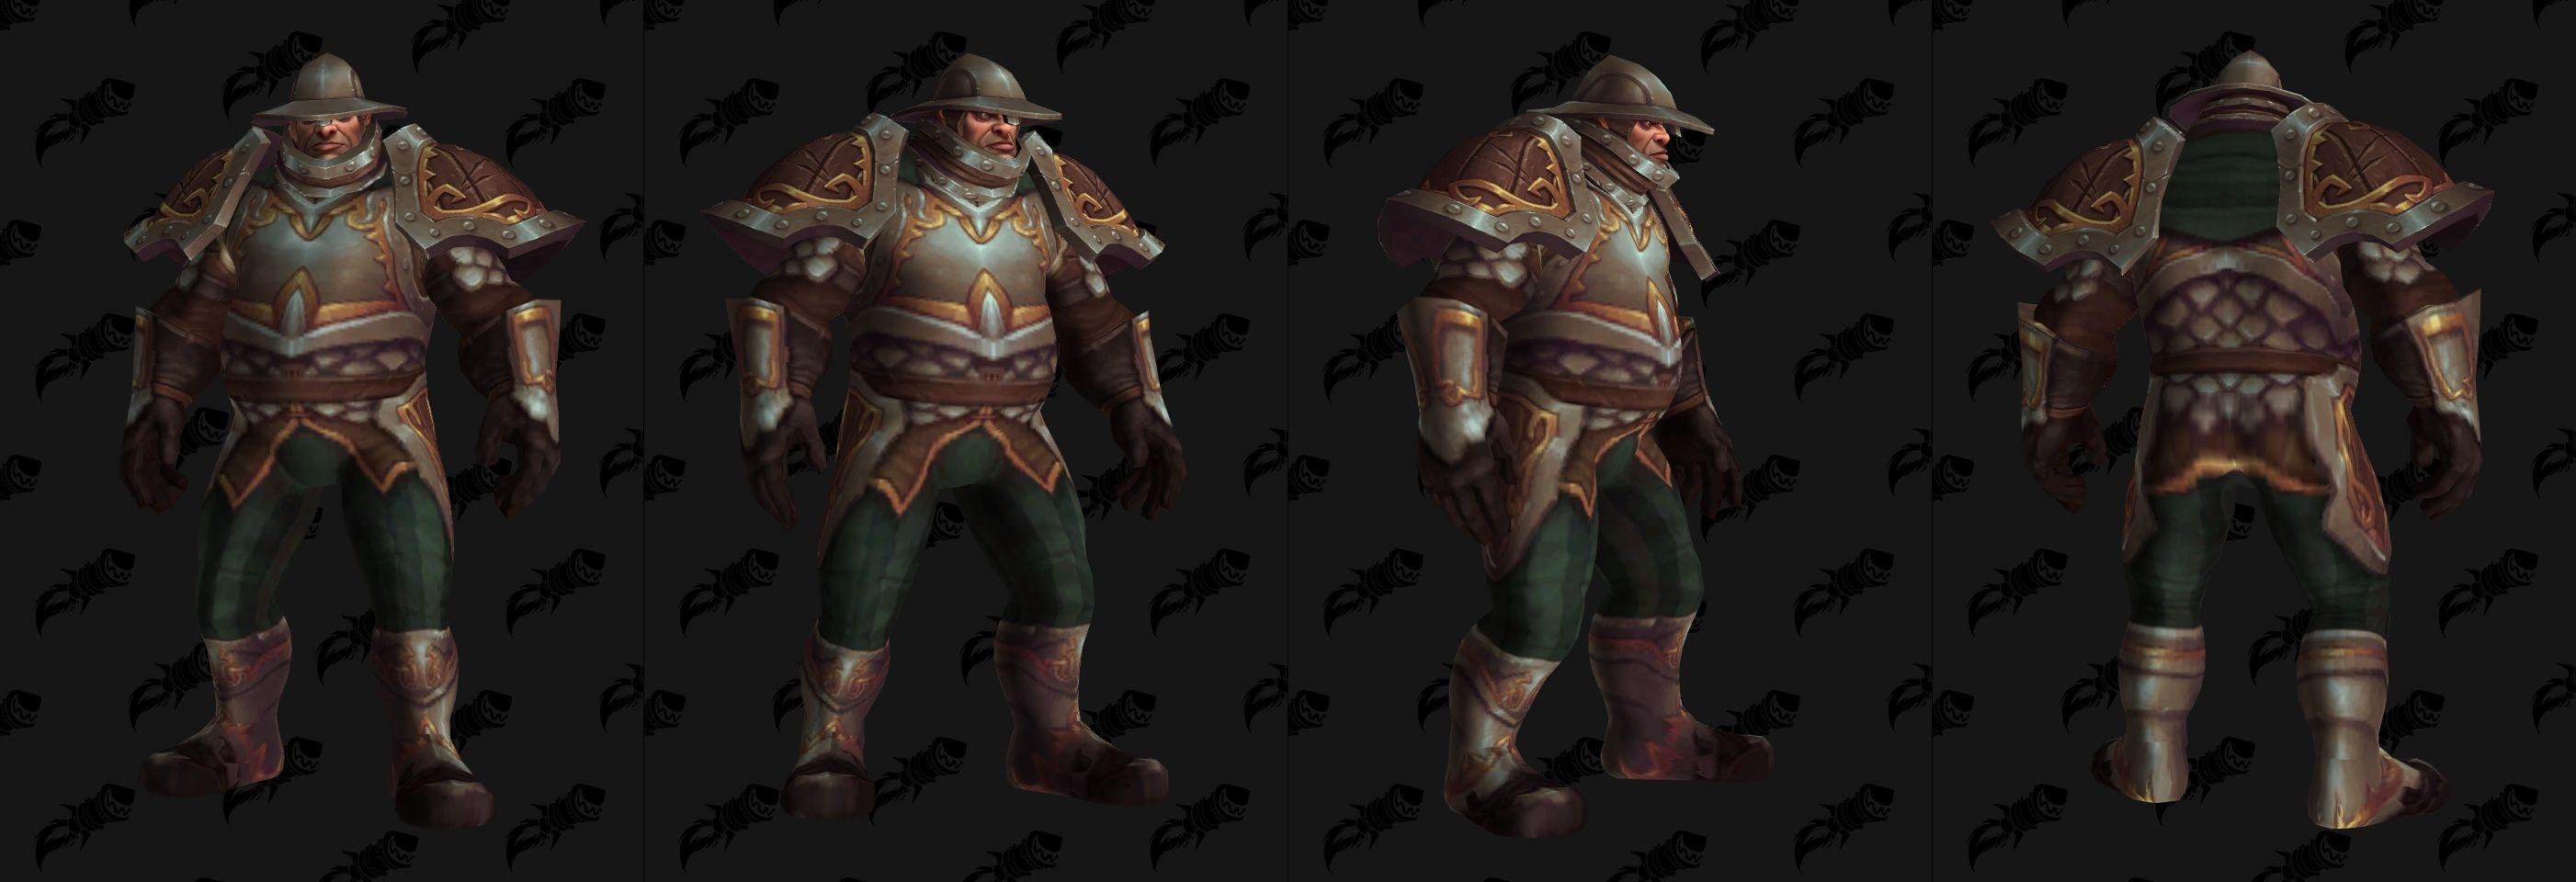 World Of Warcraft S Next Allied Race Could Be Kul Tiran